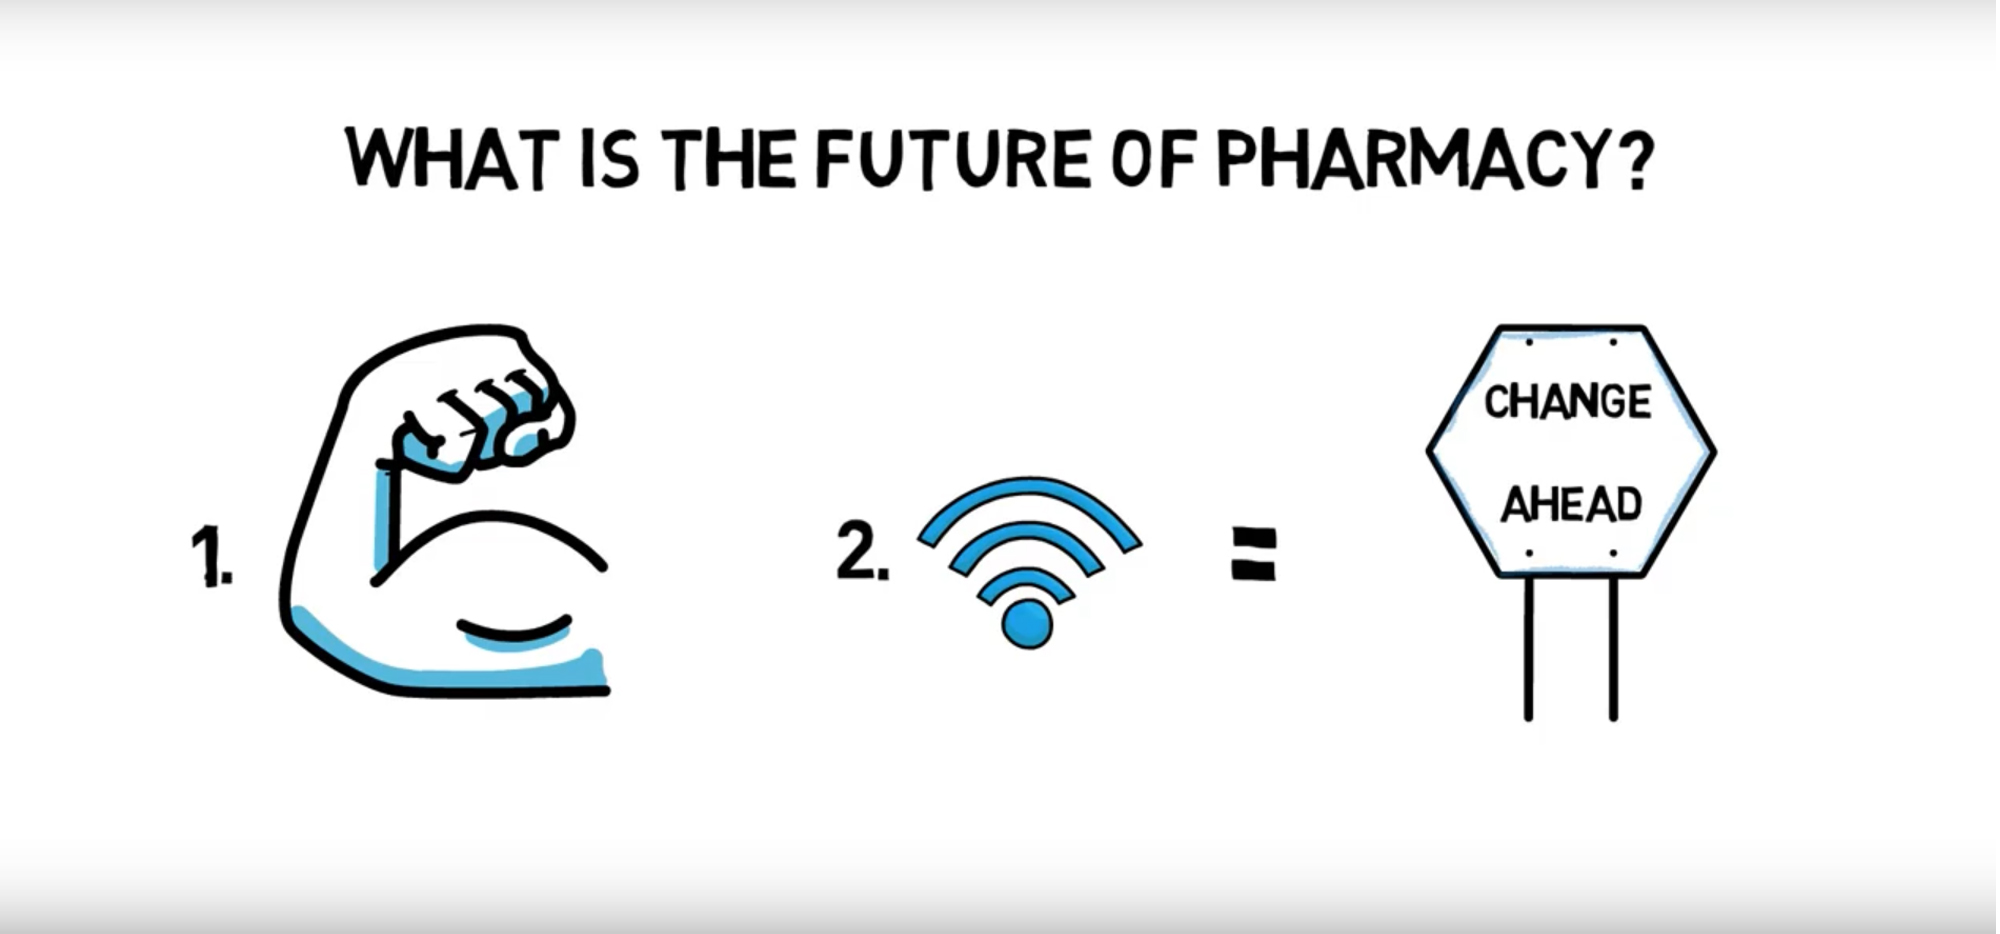 Pharmacy in the 21st century: Transformational change